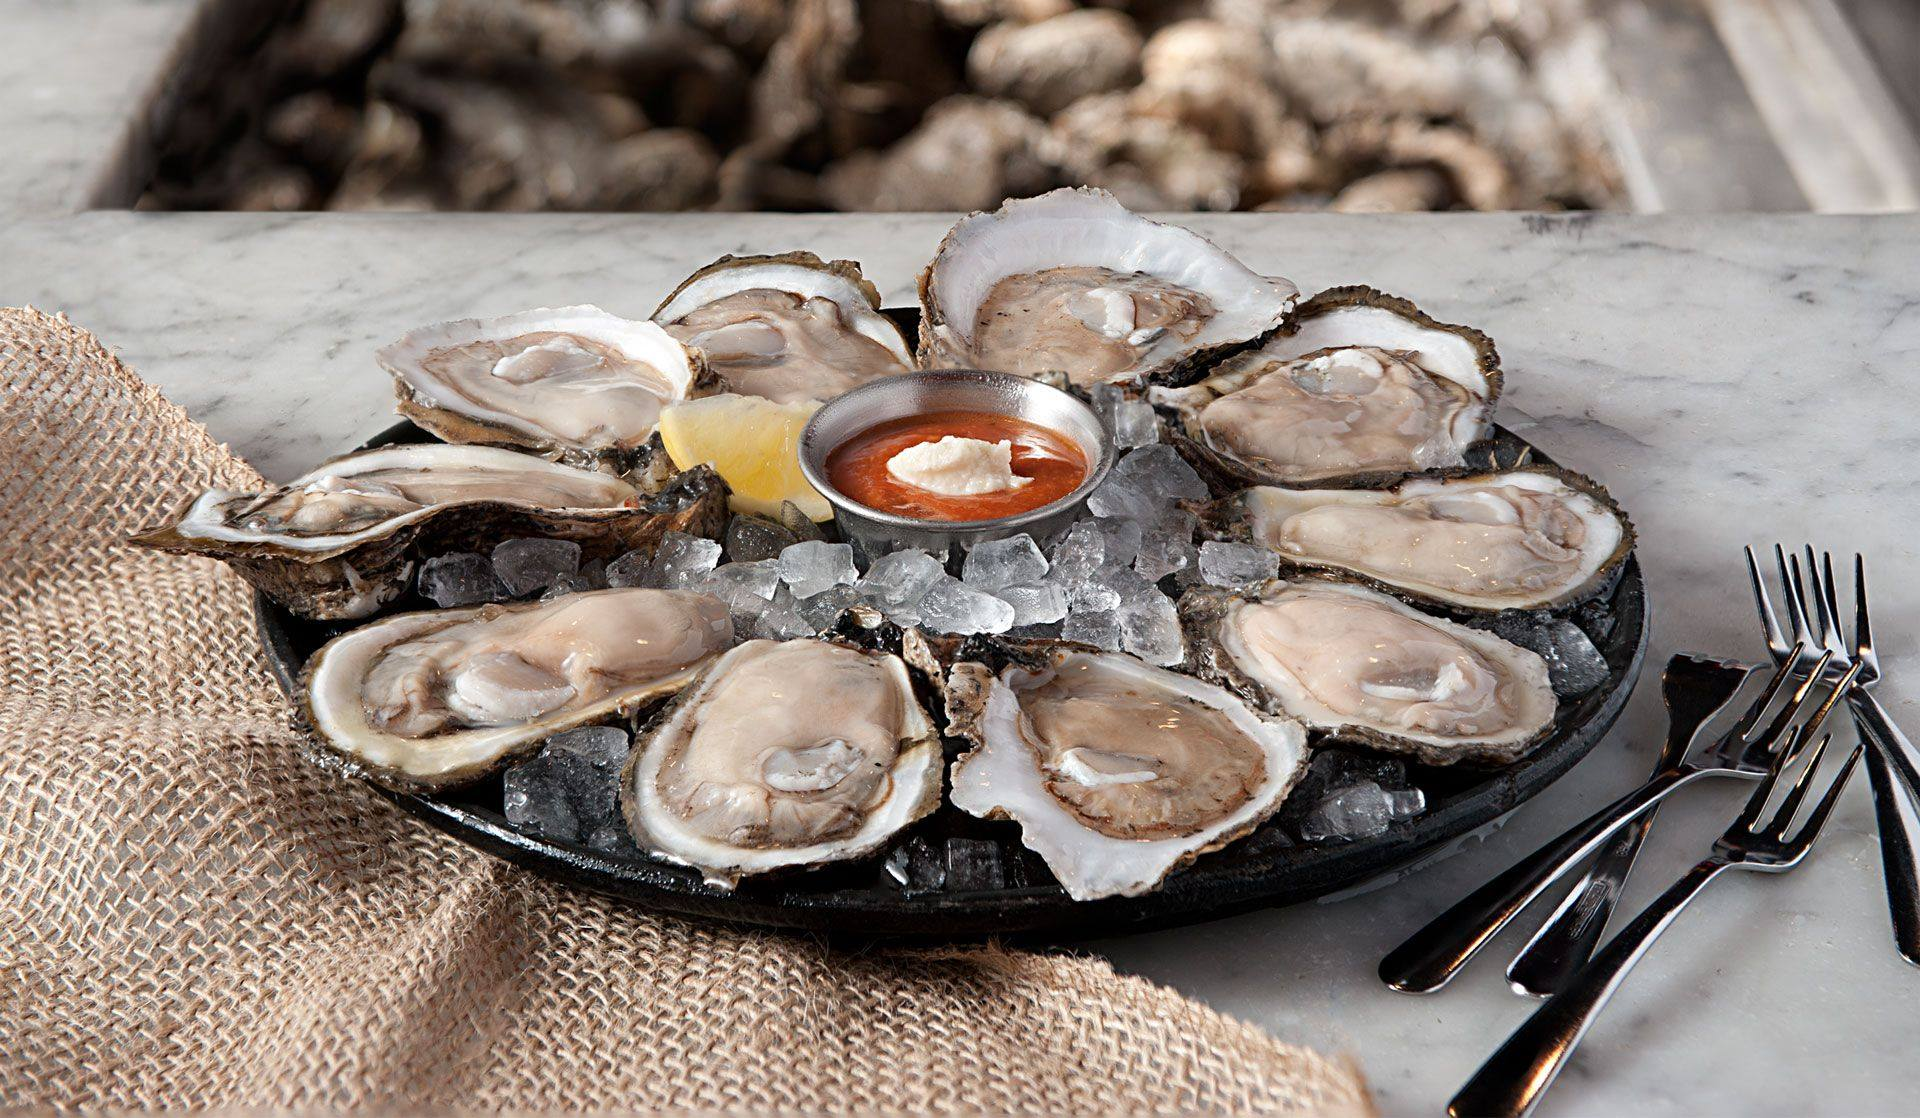 assortment of oysters on a tray with cocktail sauce